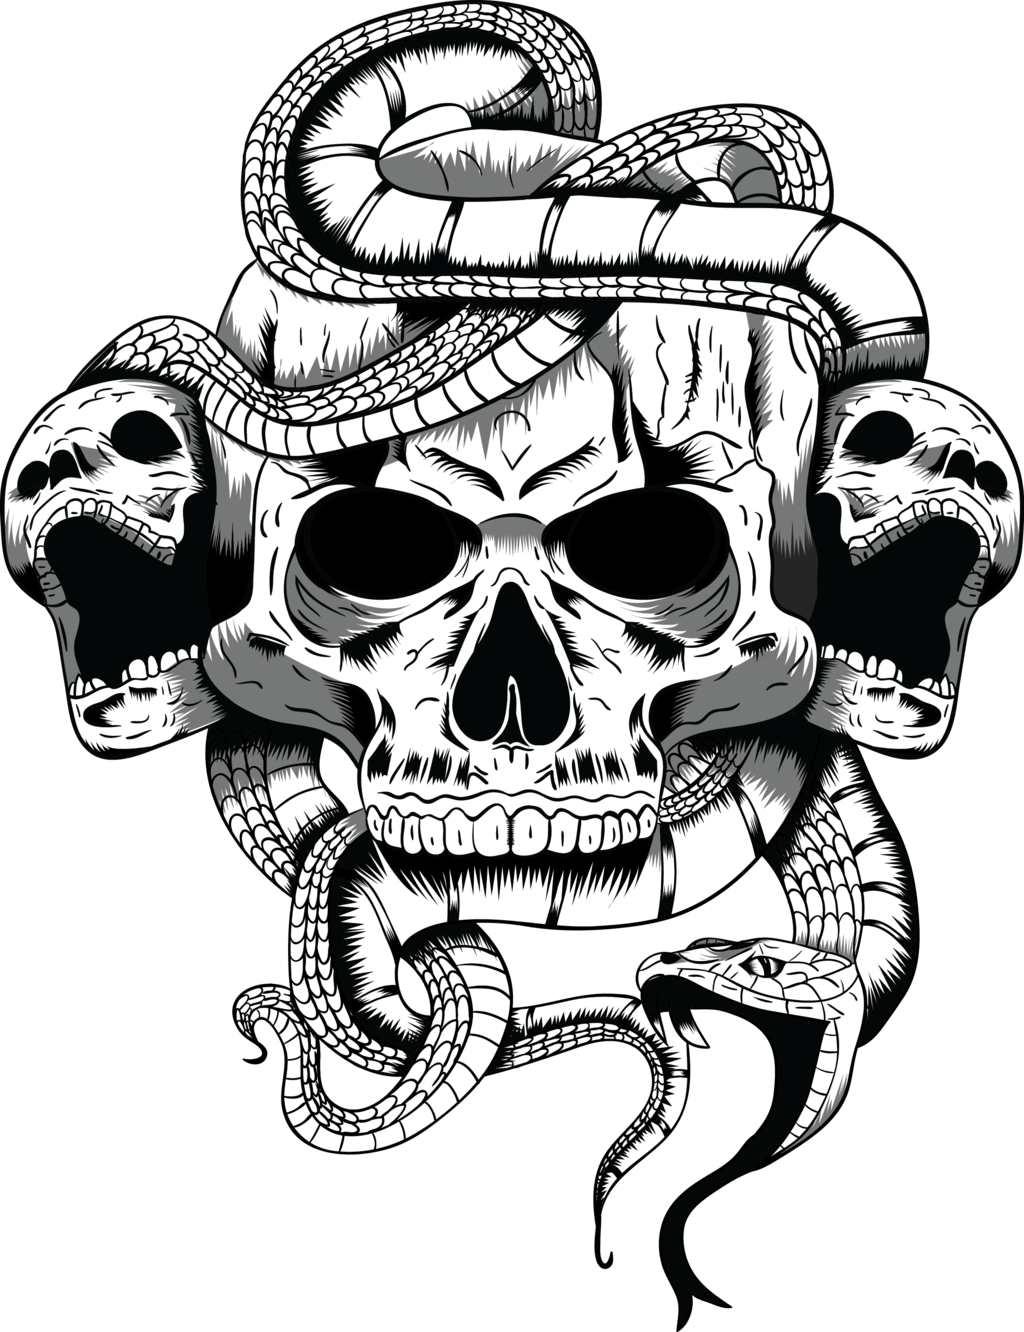 skull illustration arrtman deviantart #13761